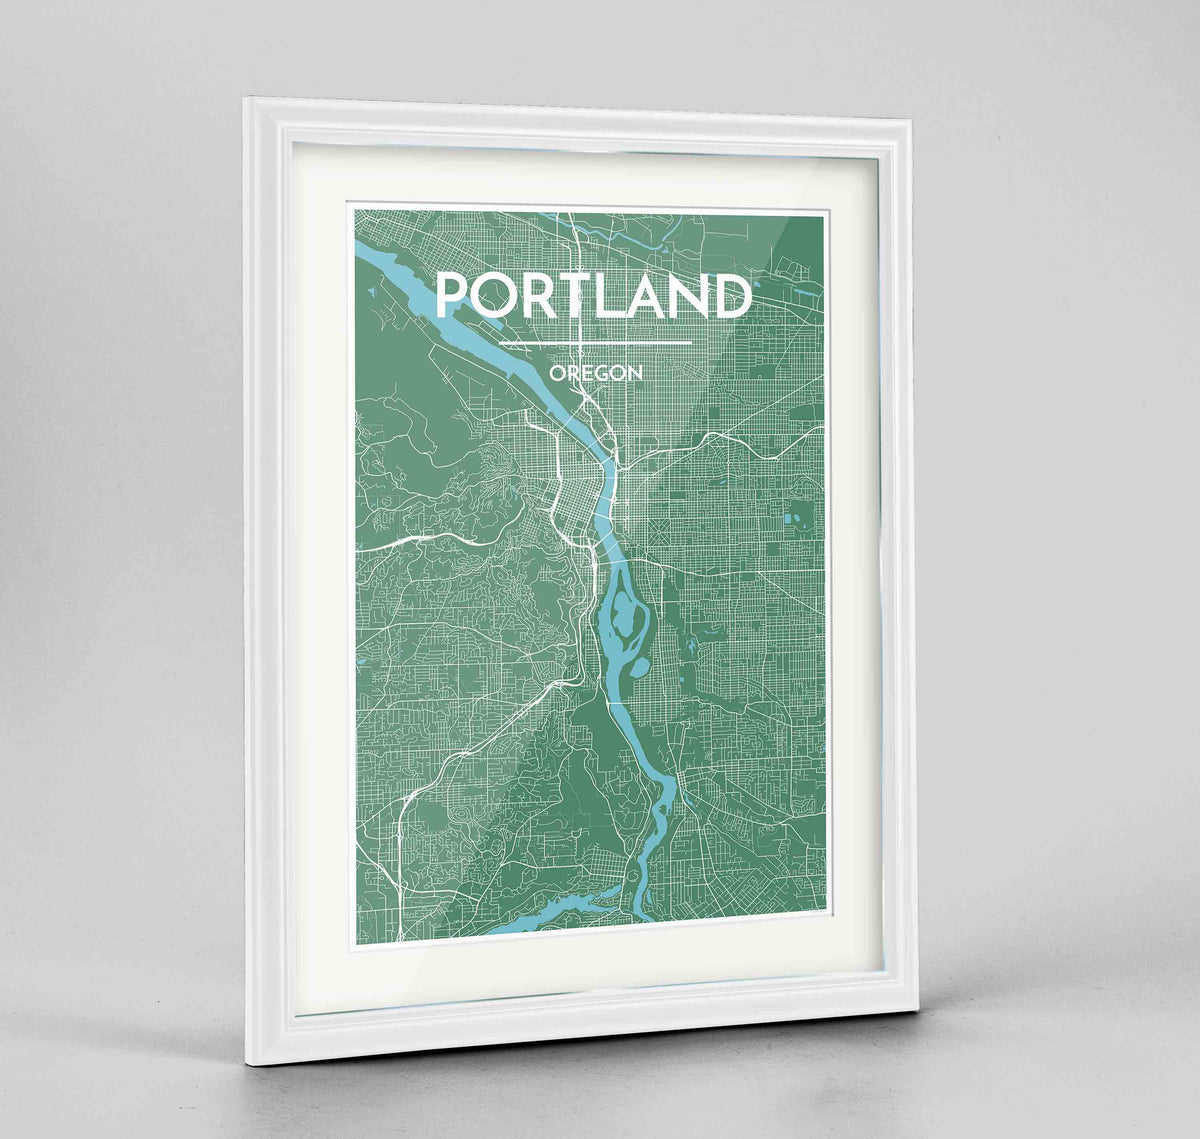 "Framed Portland - Oregon Map Art Print 24x36"" Traditional White frame Point Two Design Group"